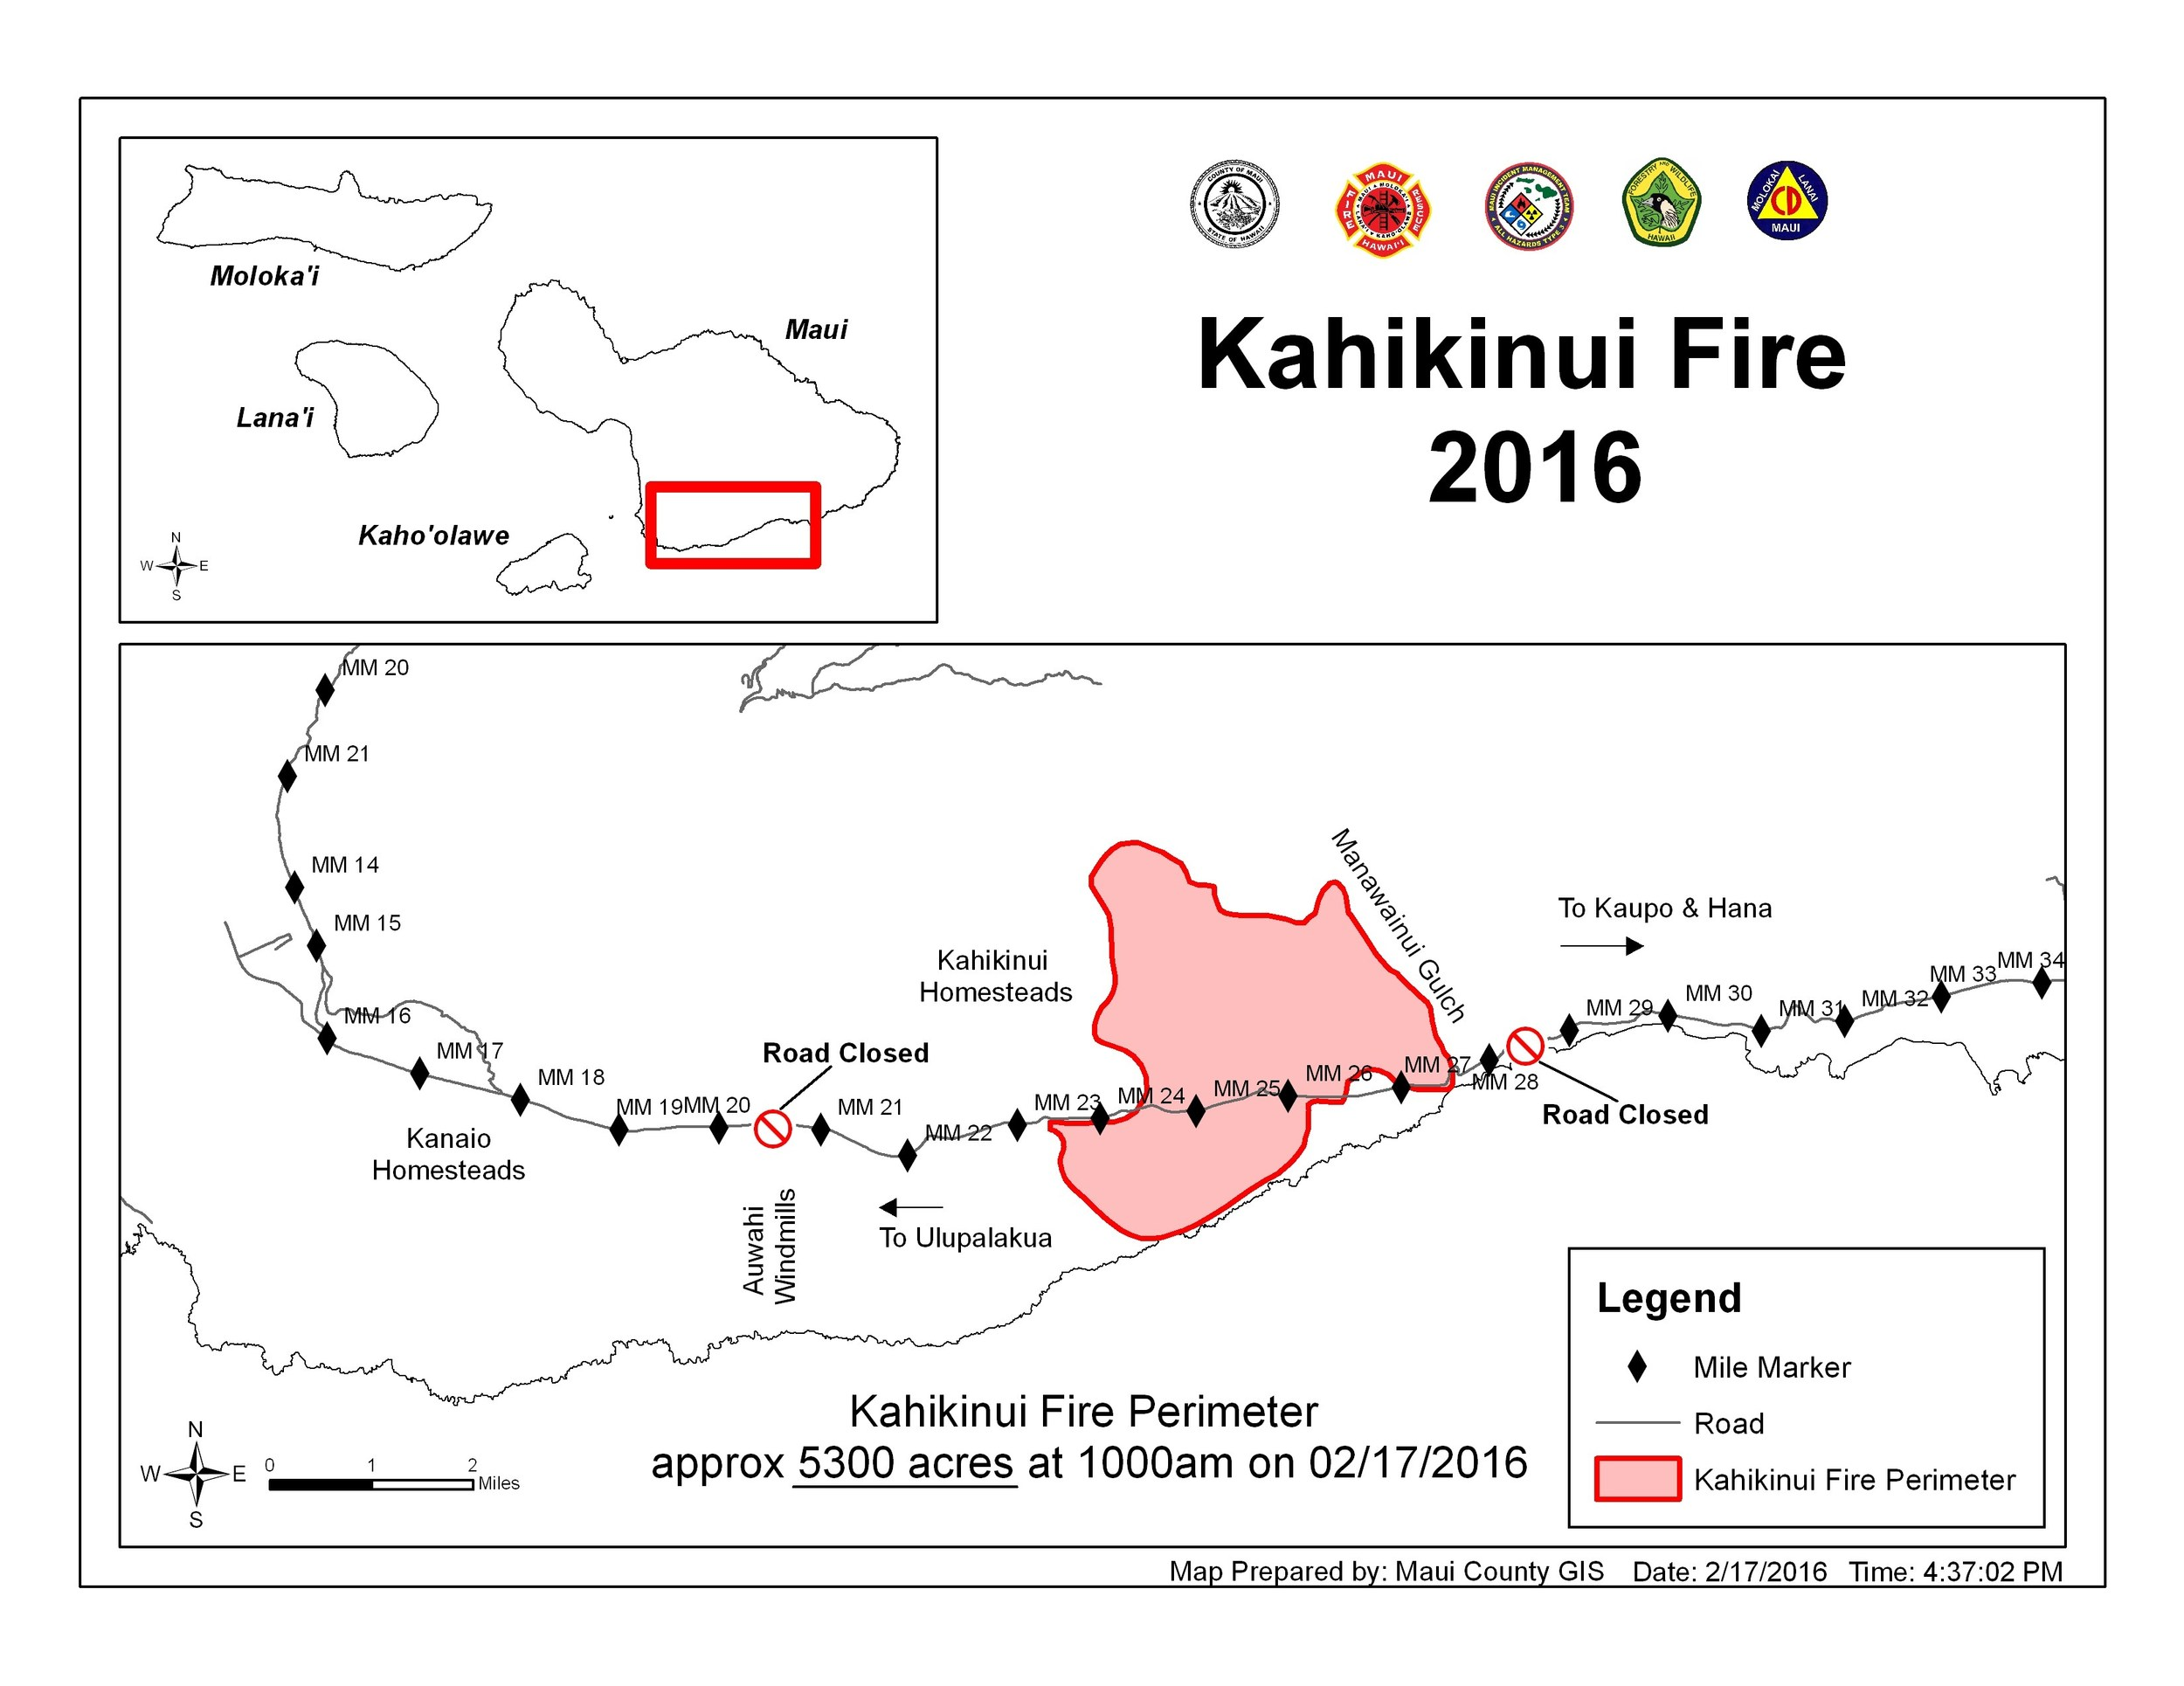 Map of Kahikinui Fire. Credit: Maui County GIS